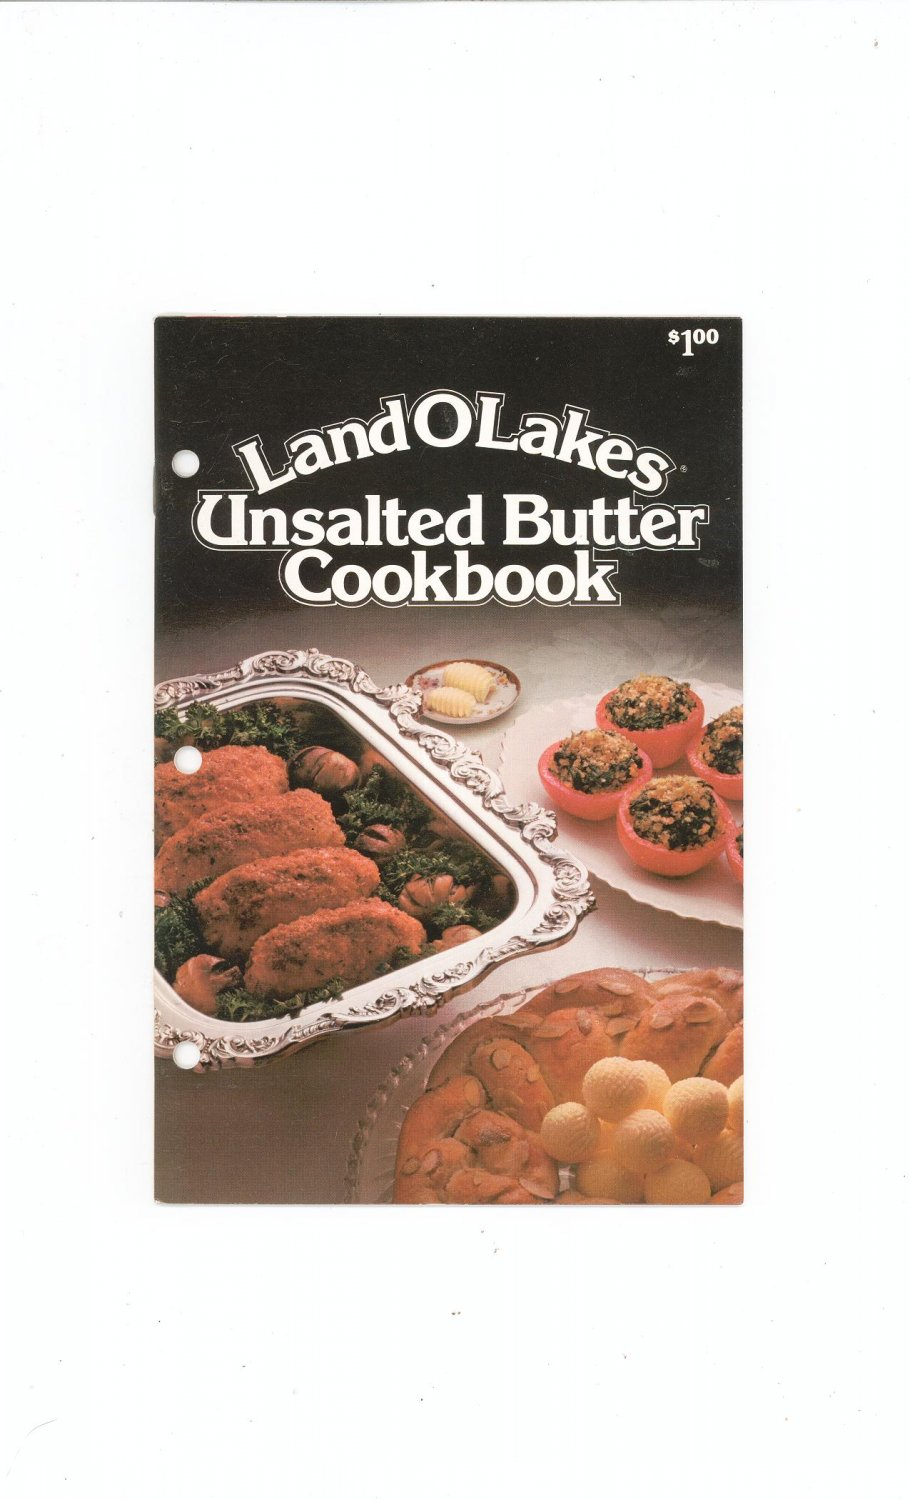 Landolakes Unsalted Butter Cookbook 1981 Land O' Lakes